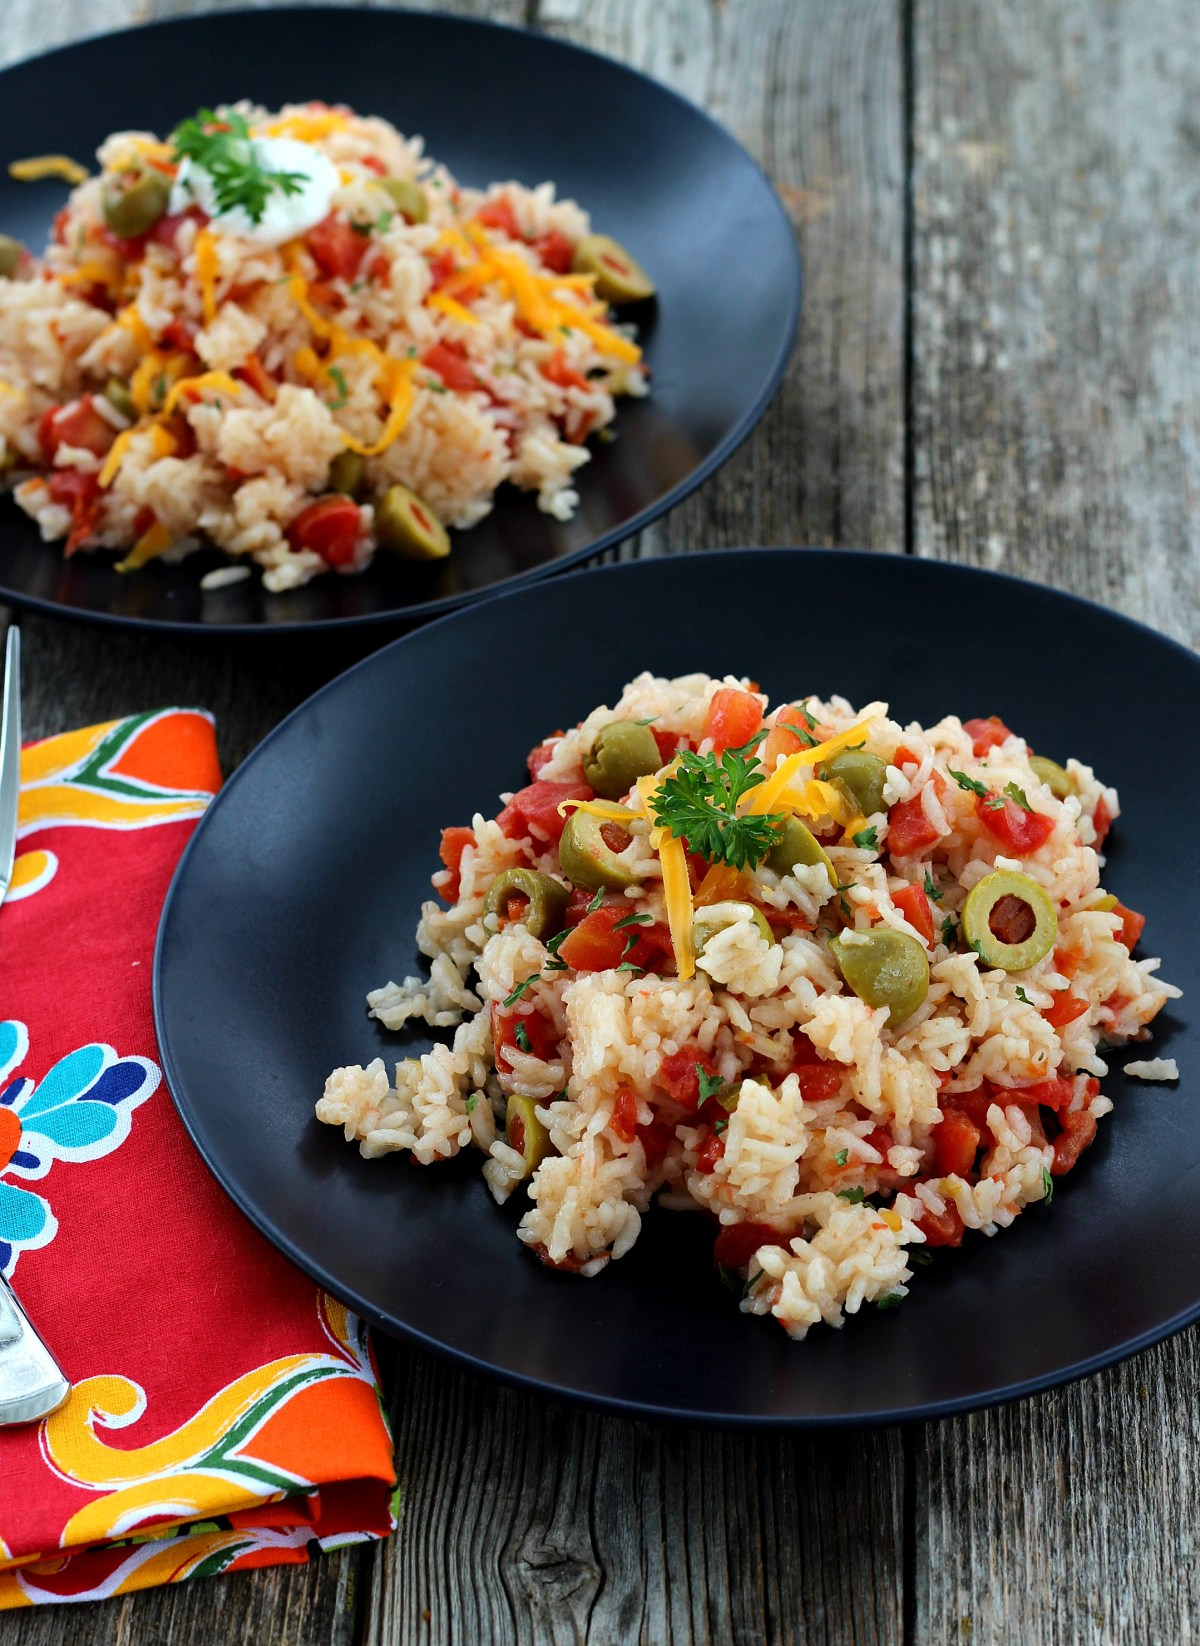 Simple and delicious Mexican Rice is made in one dish. Make it mild or spicy with Rotel tomatoes.